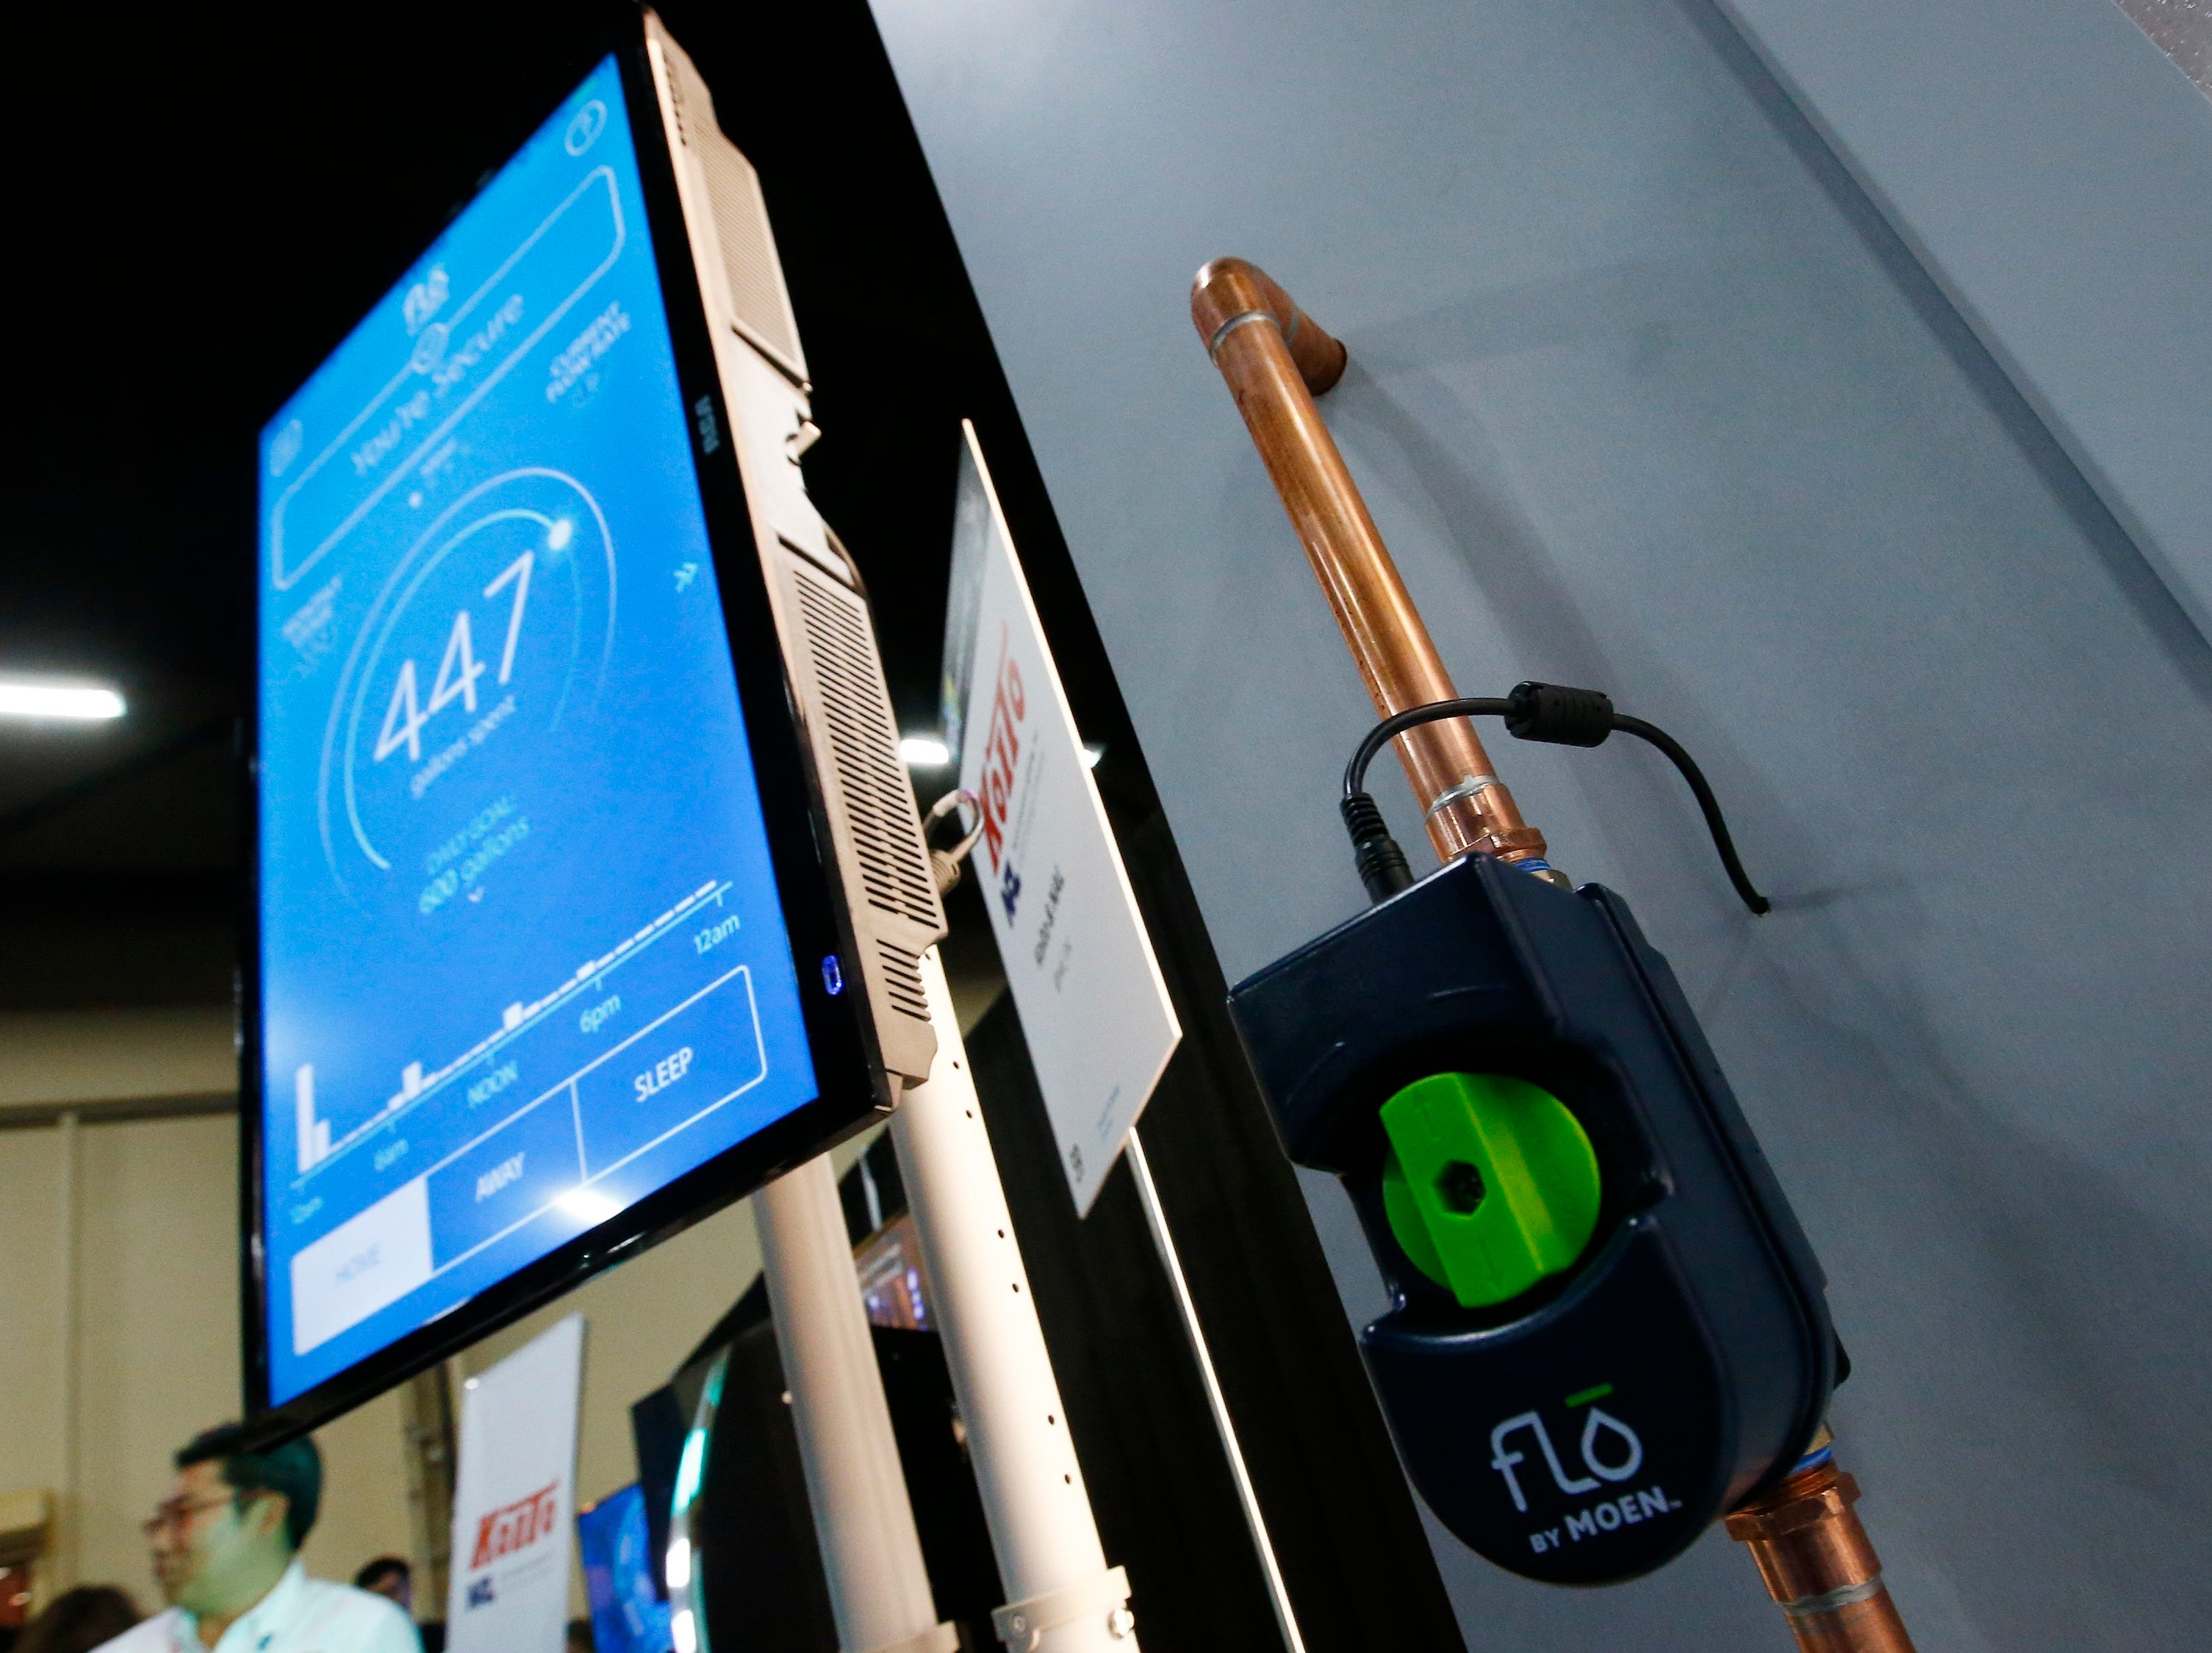 Flo, designed by Moen to detect water leaks and water usage on for an entire home and show all the information on an app, is displayed at the CES Unveiled at CES International on Sunday, Jan. 6, 2019, in Las Vegas.